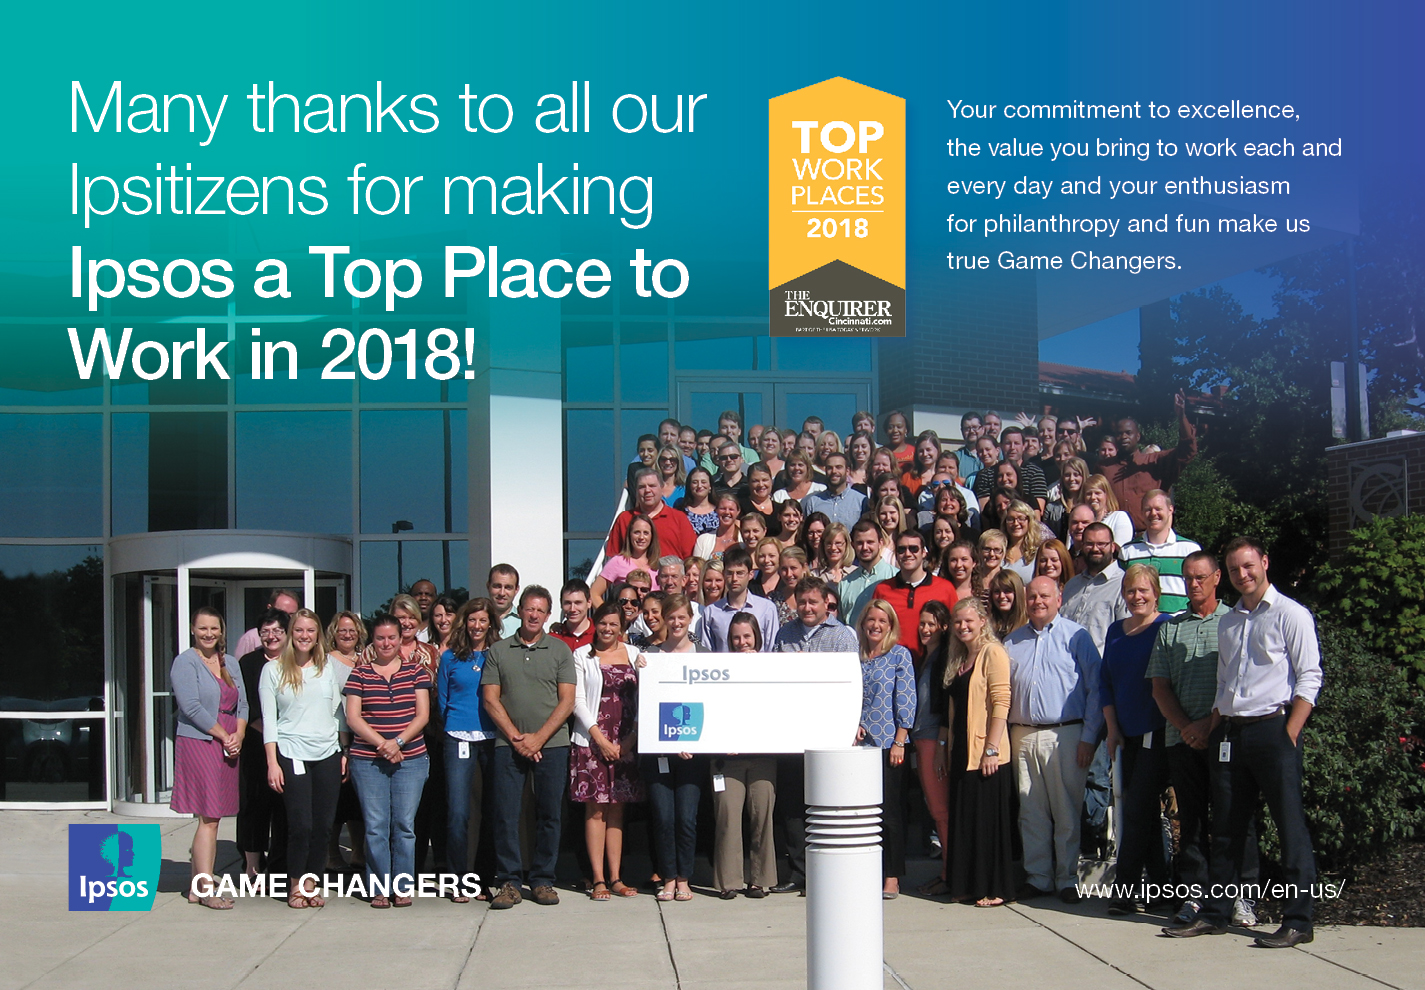 Ipsos awarded Top Workplaces in 2018